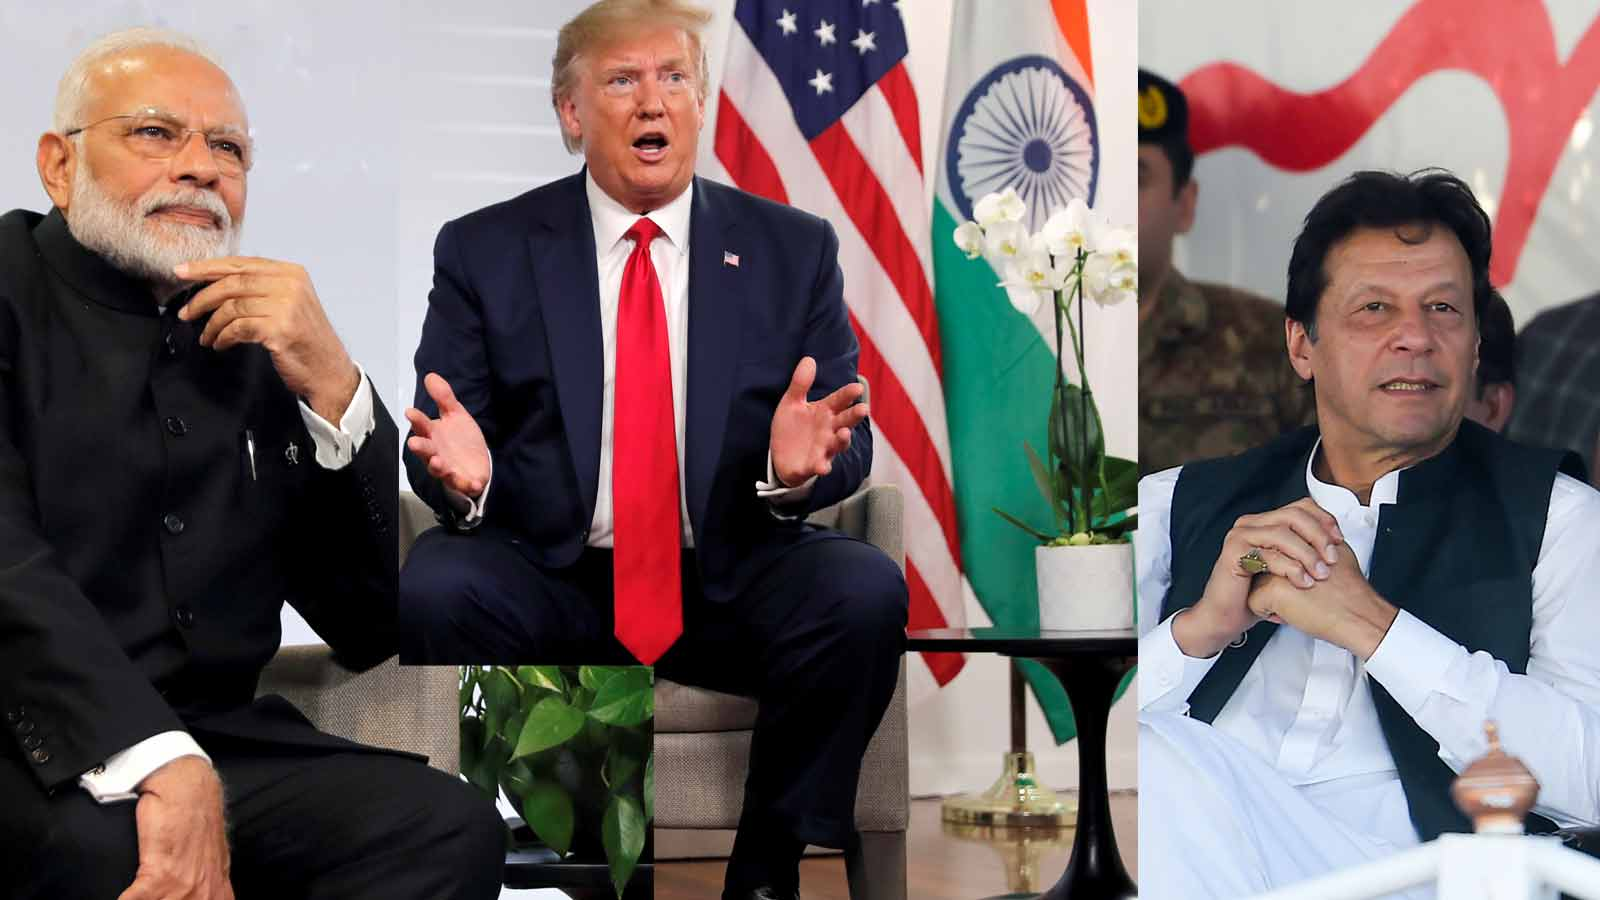 donald-trump-to-meet-pak-pm-imran-khan-a-day-after-he-joins-pm-narendra-modi-for-howdy-modi